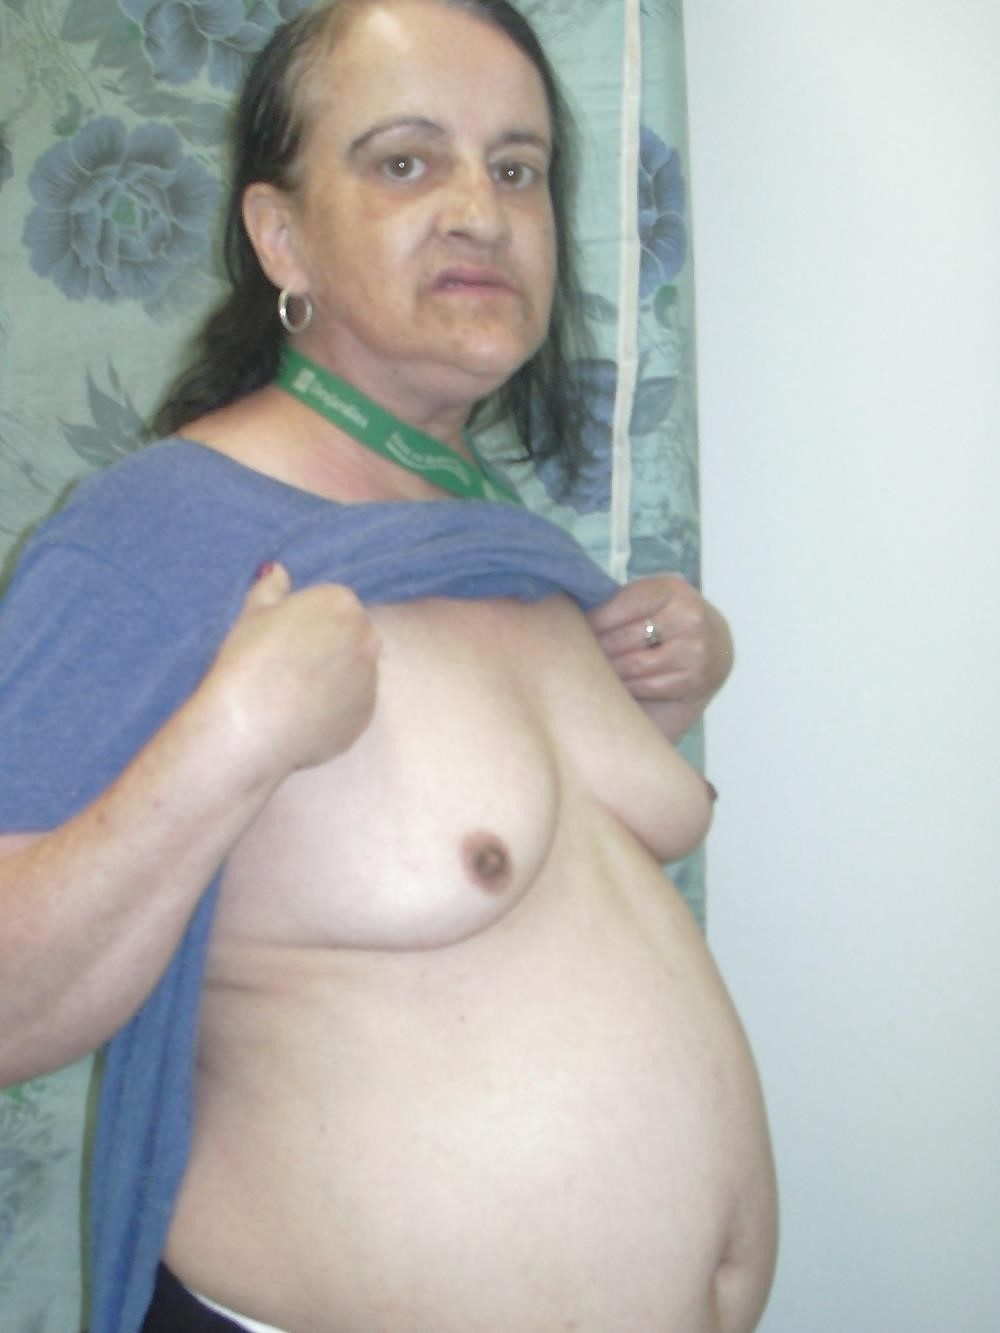 Naked pictures of ugly women-8493